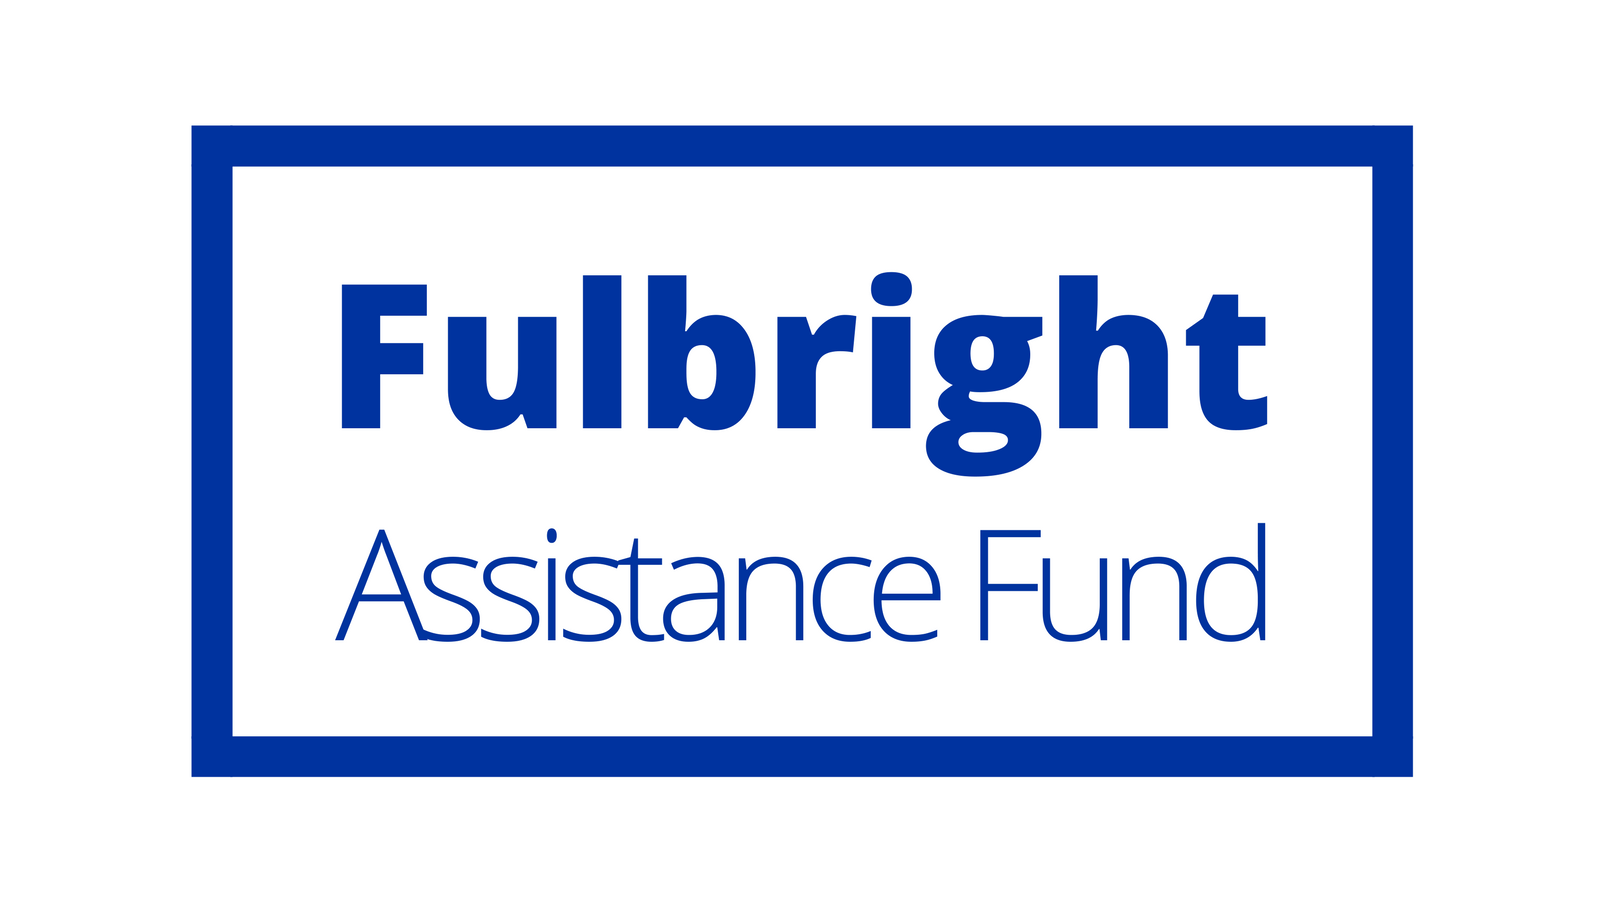 Fulbright Assistance Fund